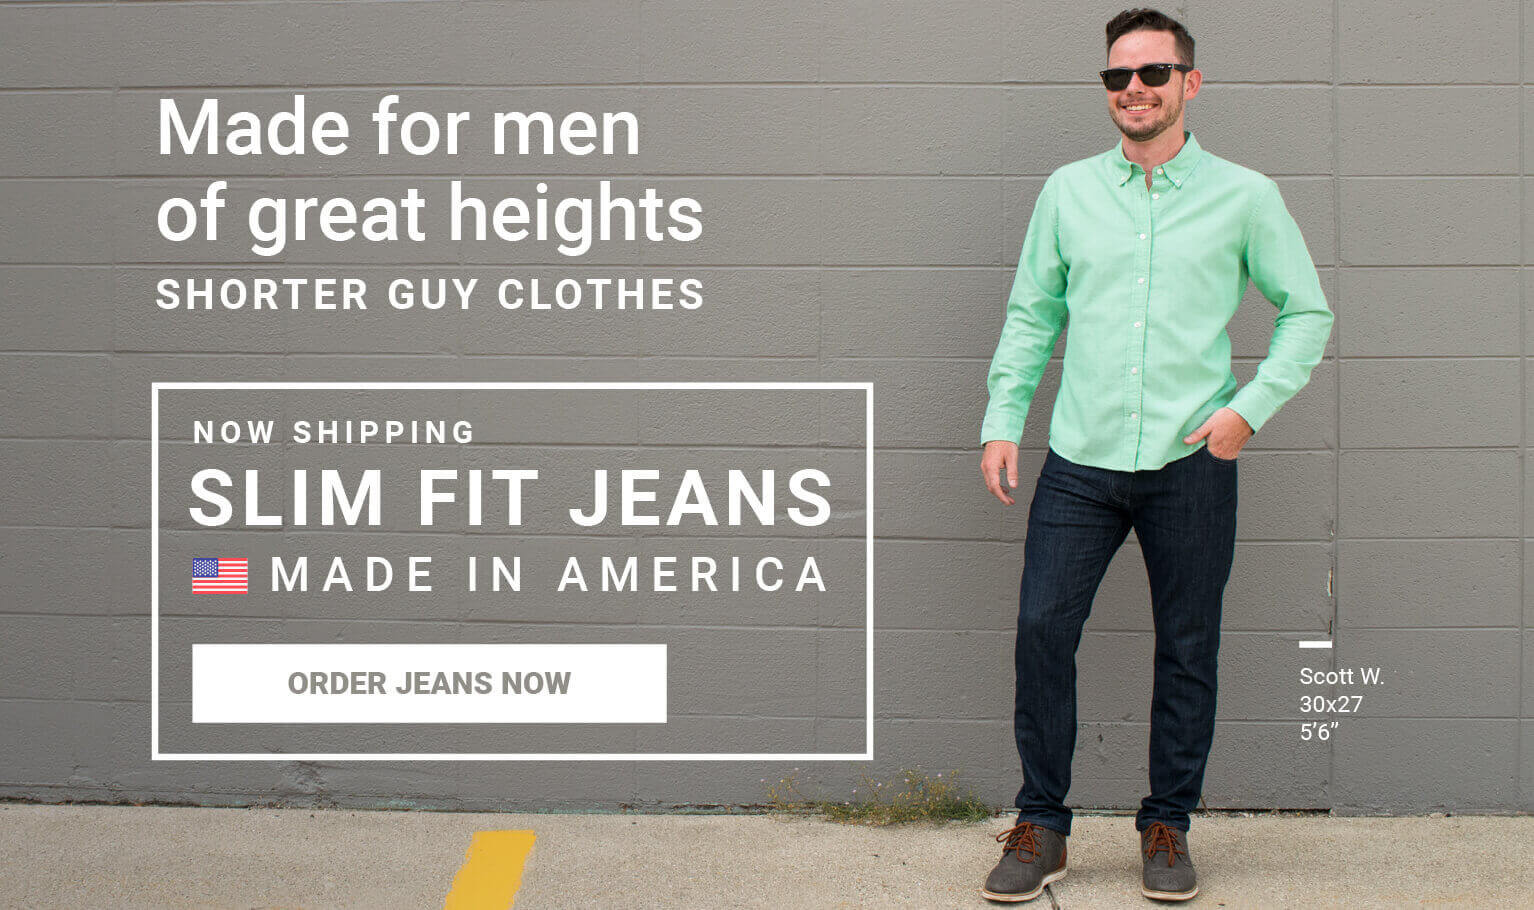 Now shipping, Slim Fit Jeans. Made in America. Order jeans now! Made for men of great heights, shorter guy clothes.